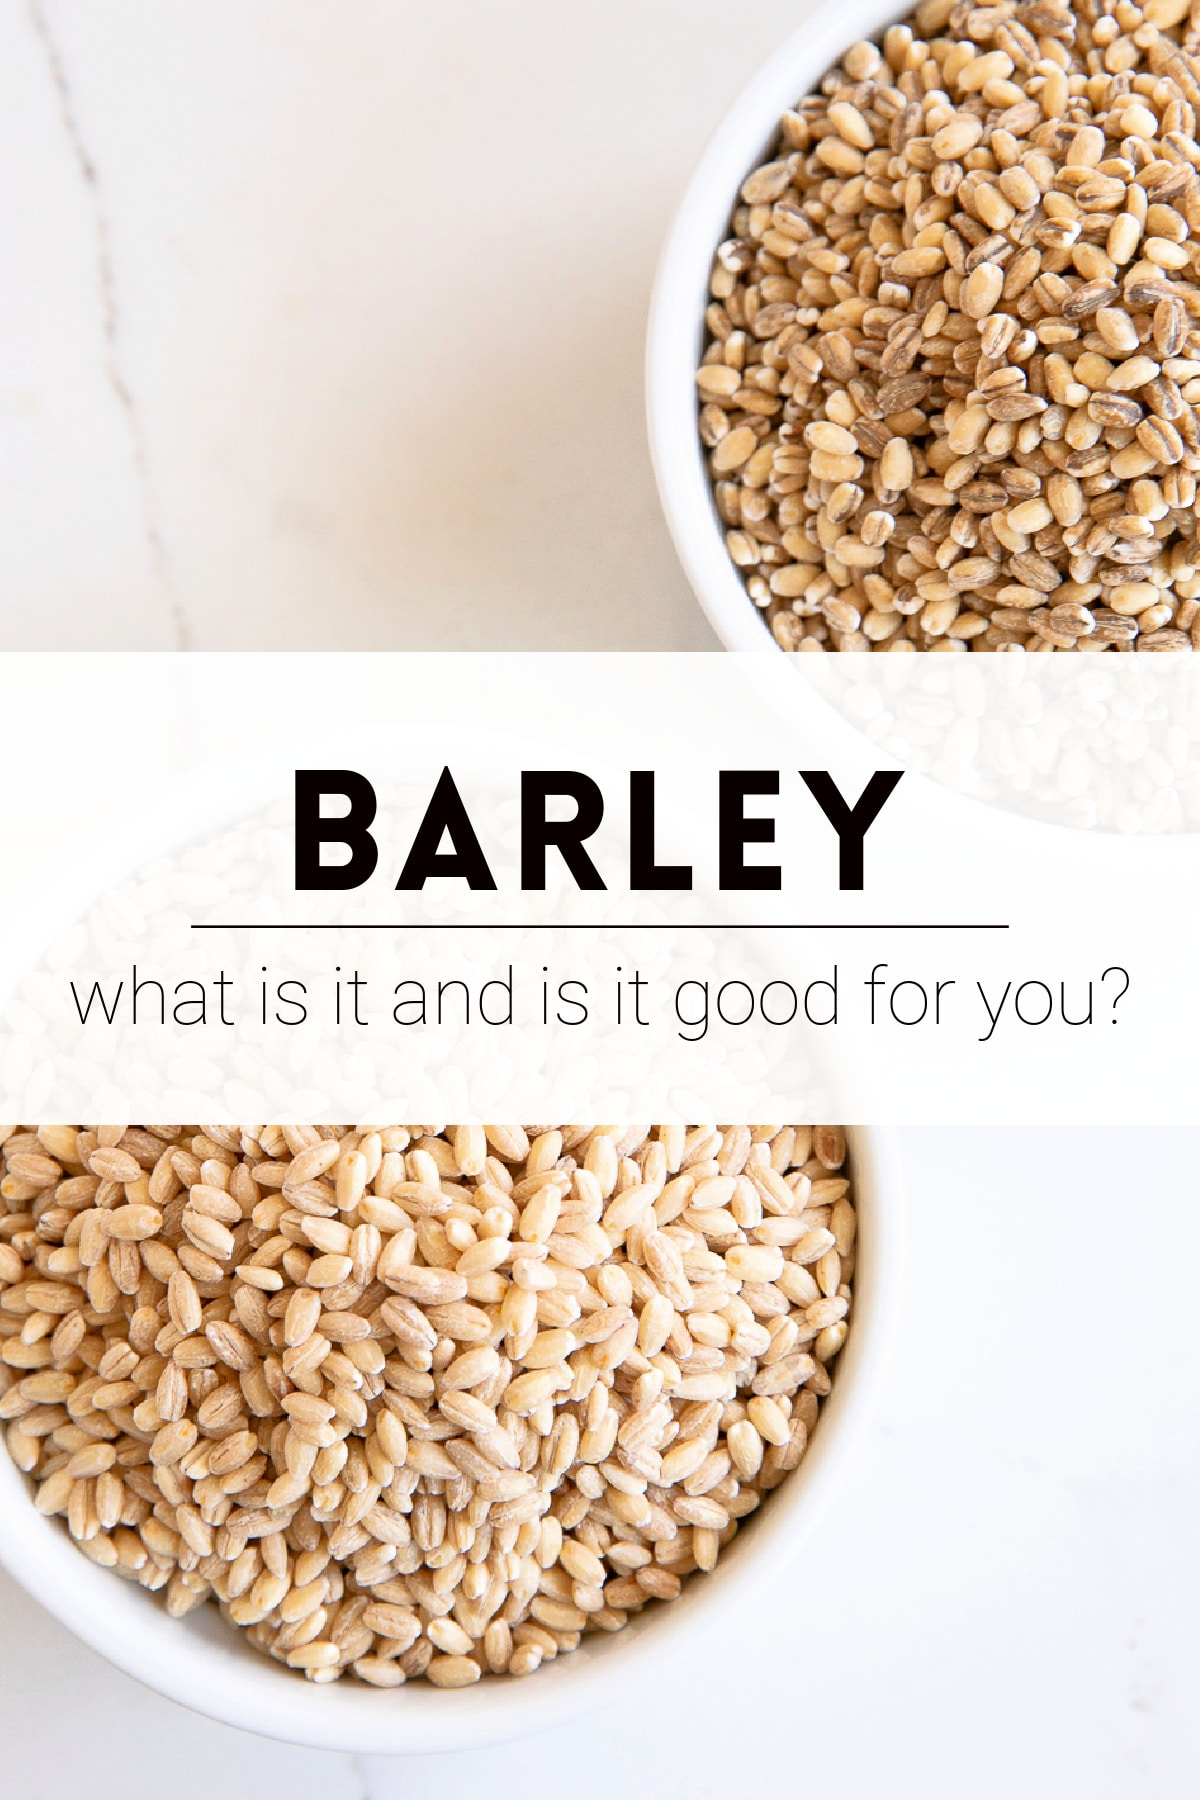 """Image of two white ramekins one filled with pearled barley and one with hulled barley with the text overlay """"Barley: What Is It And Is It Good For You?"""""""